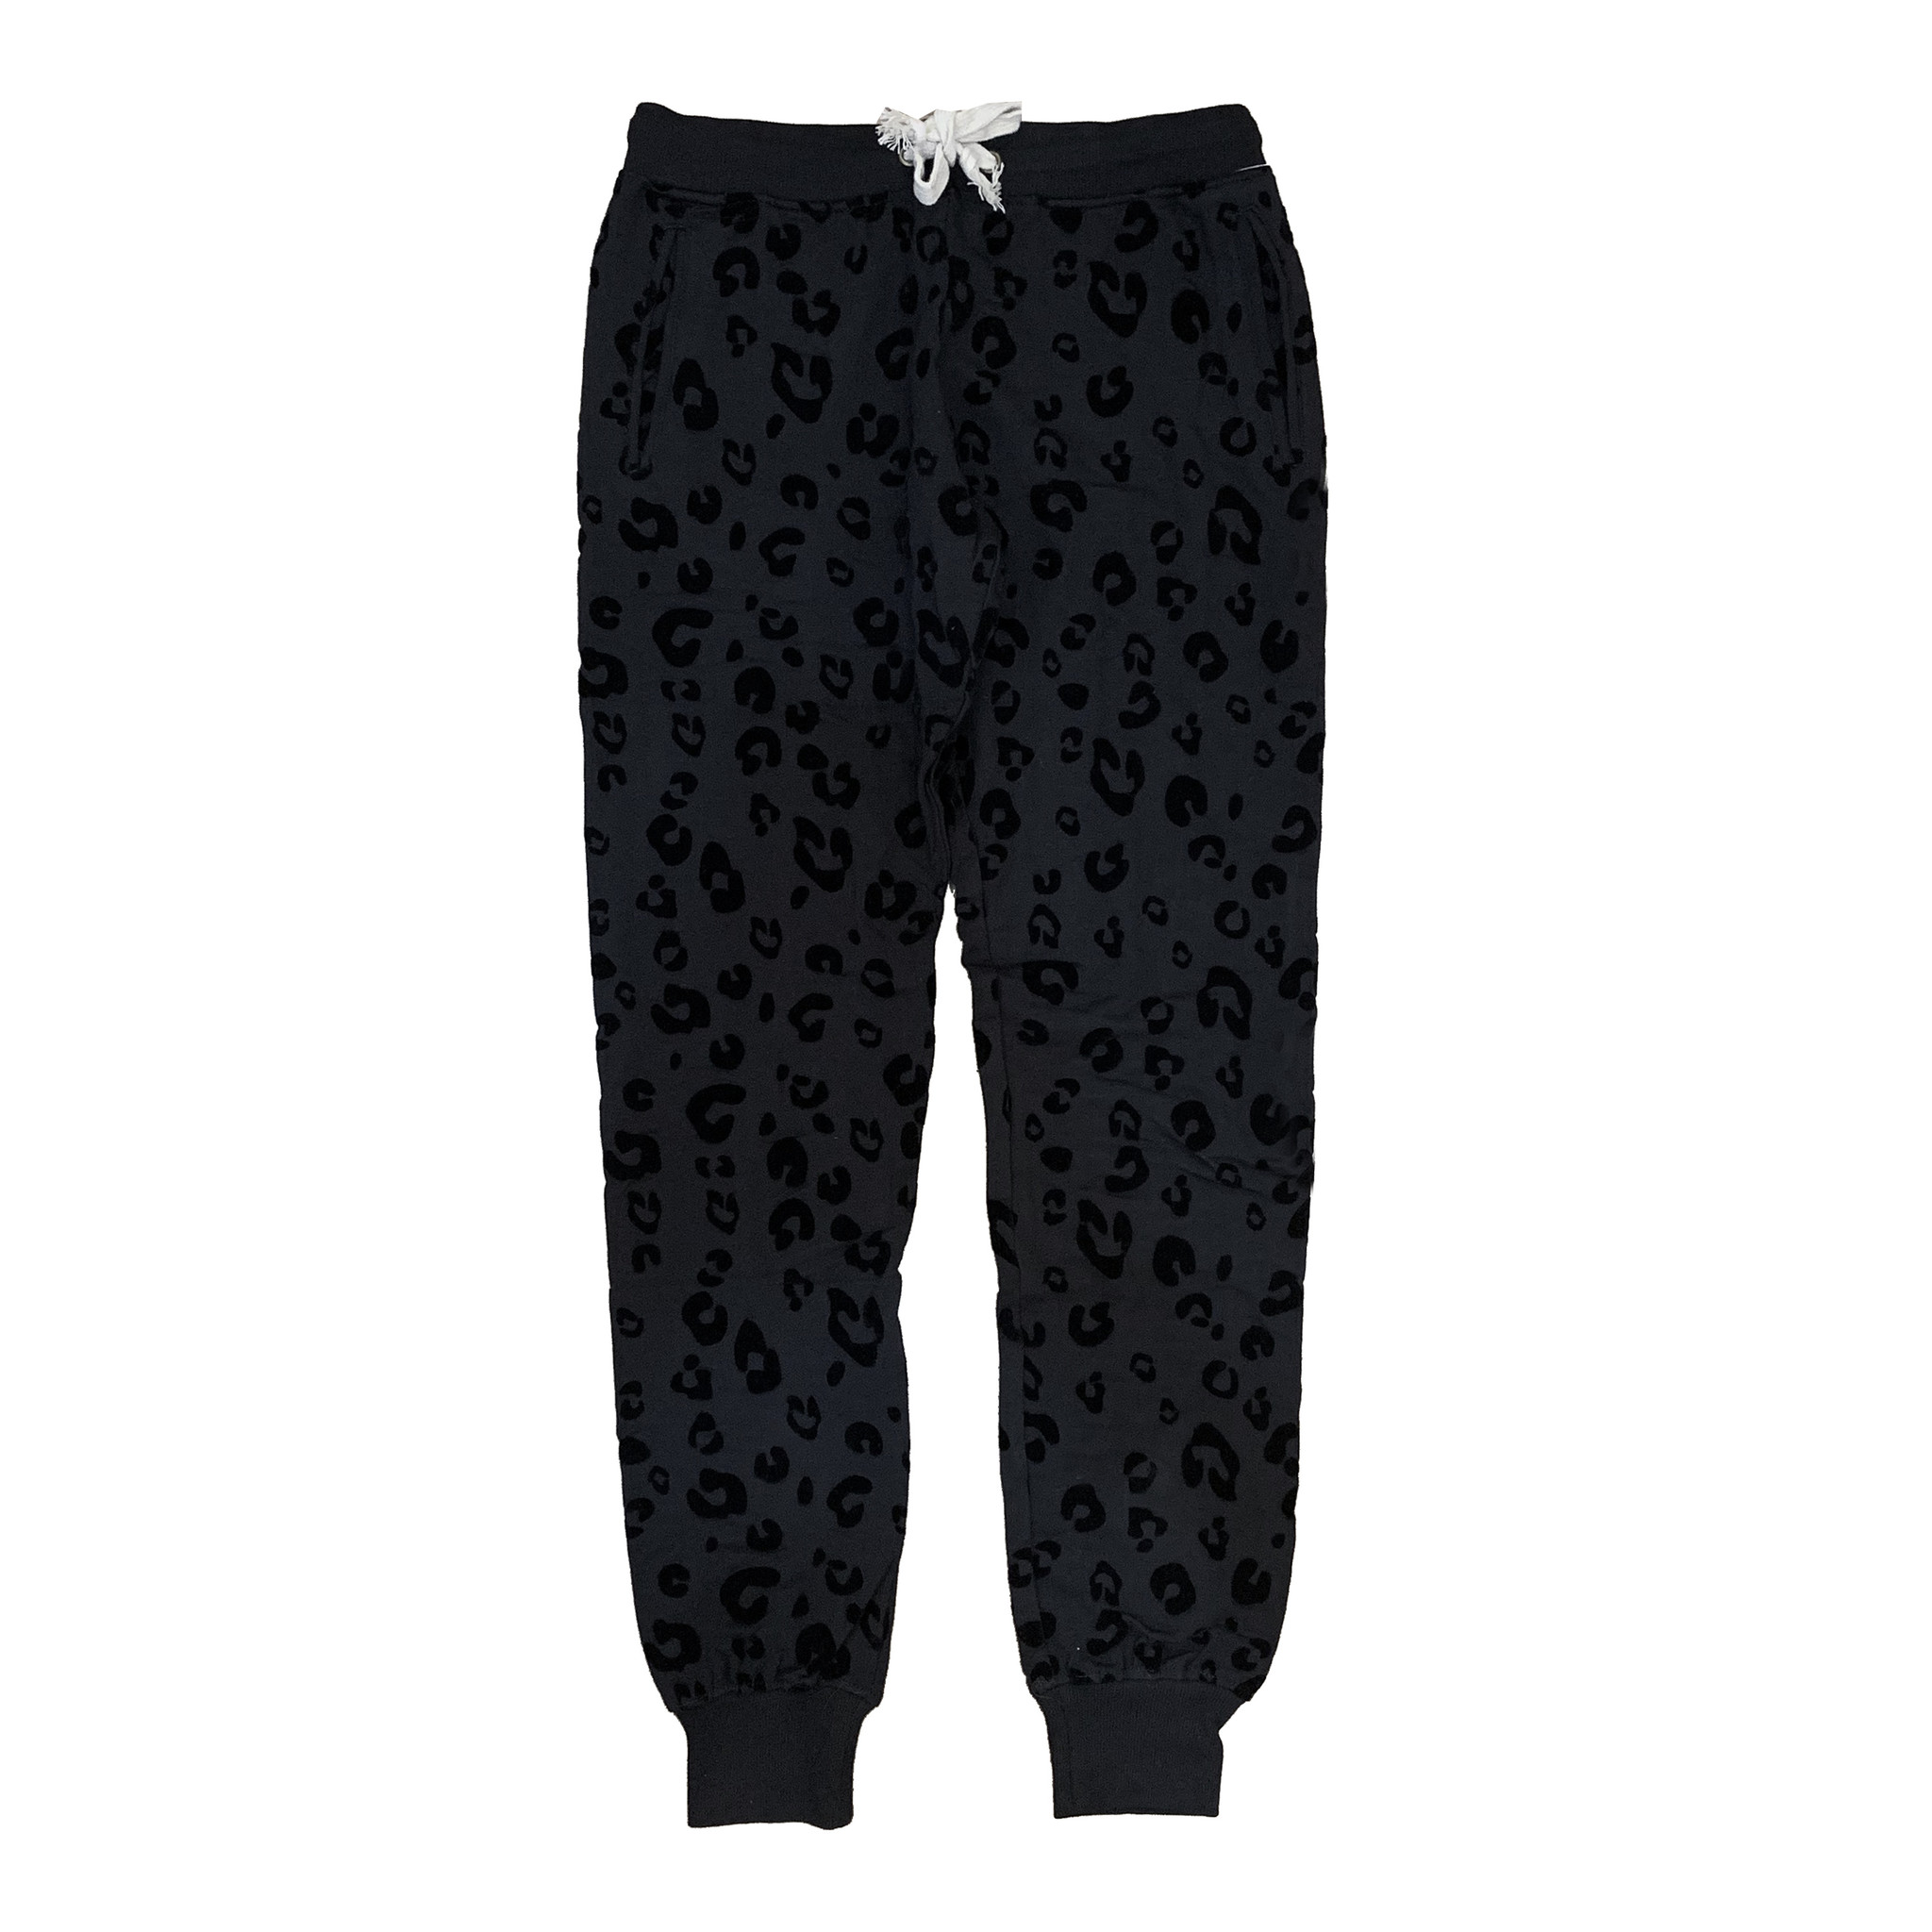 Theo & Spence Black Leopard Jogger